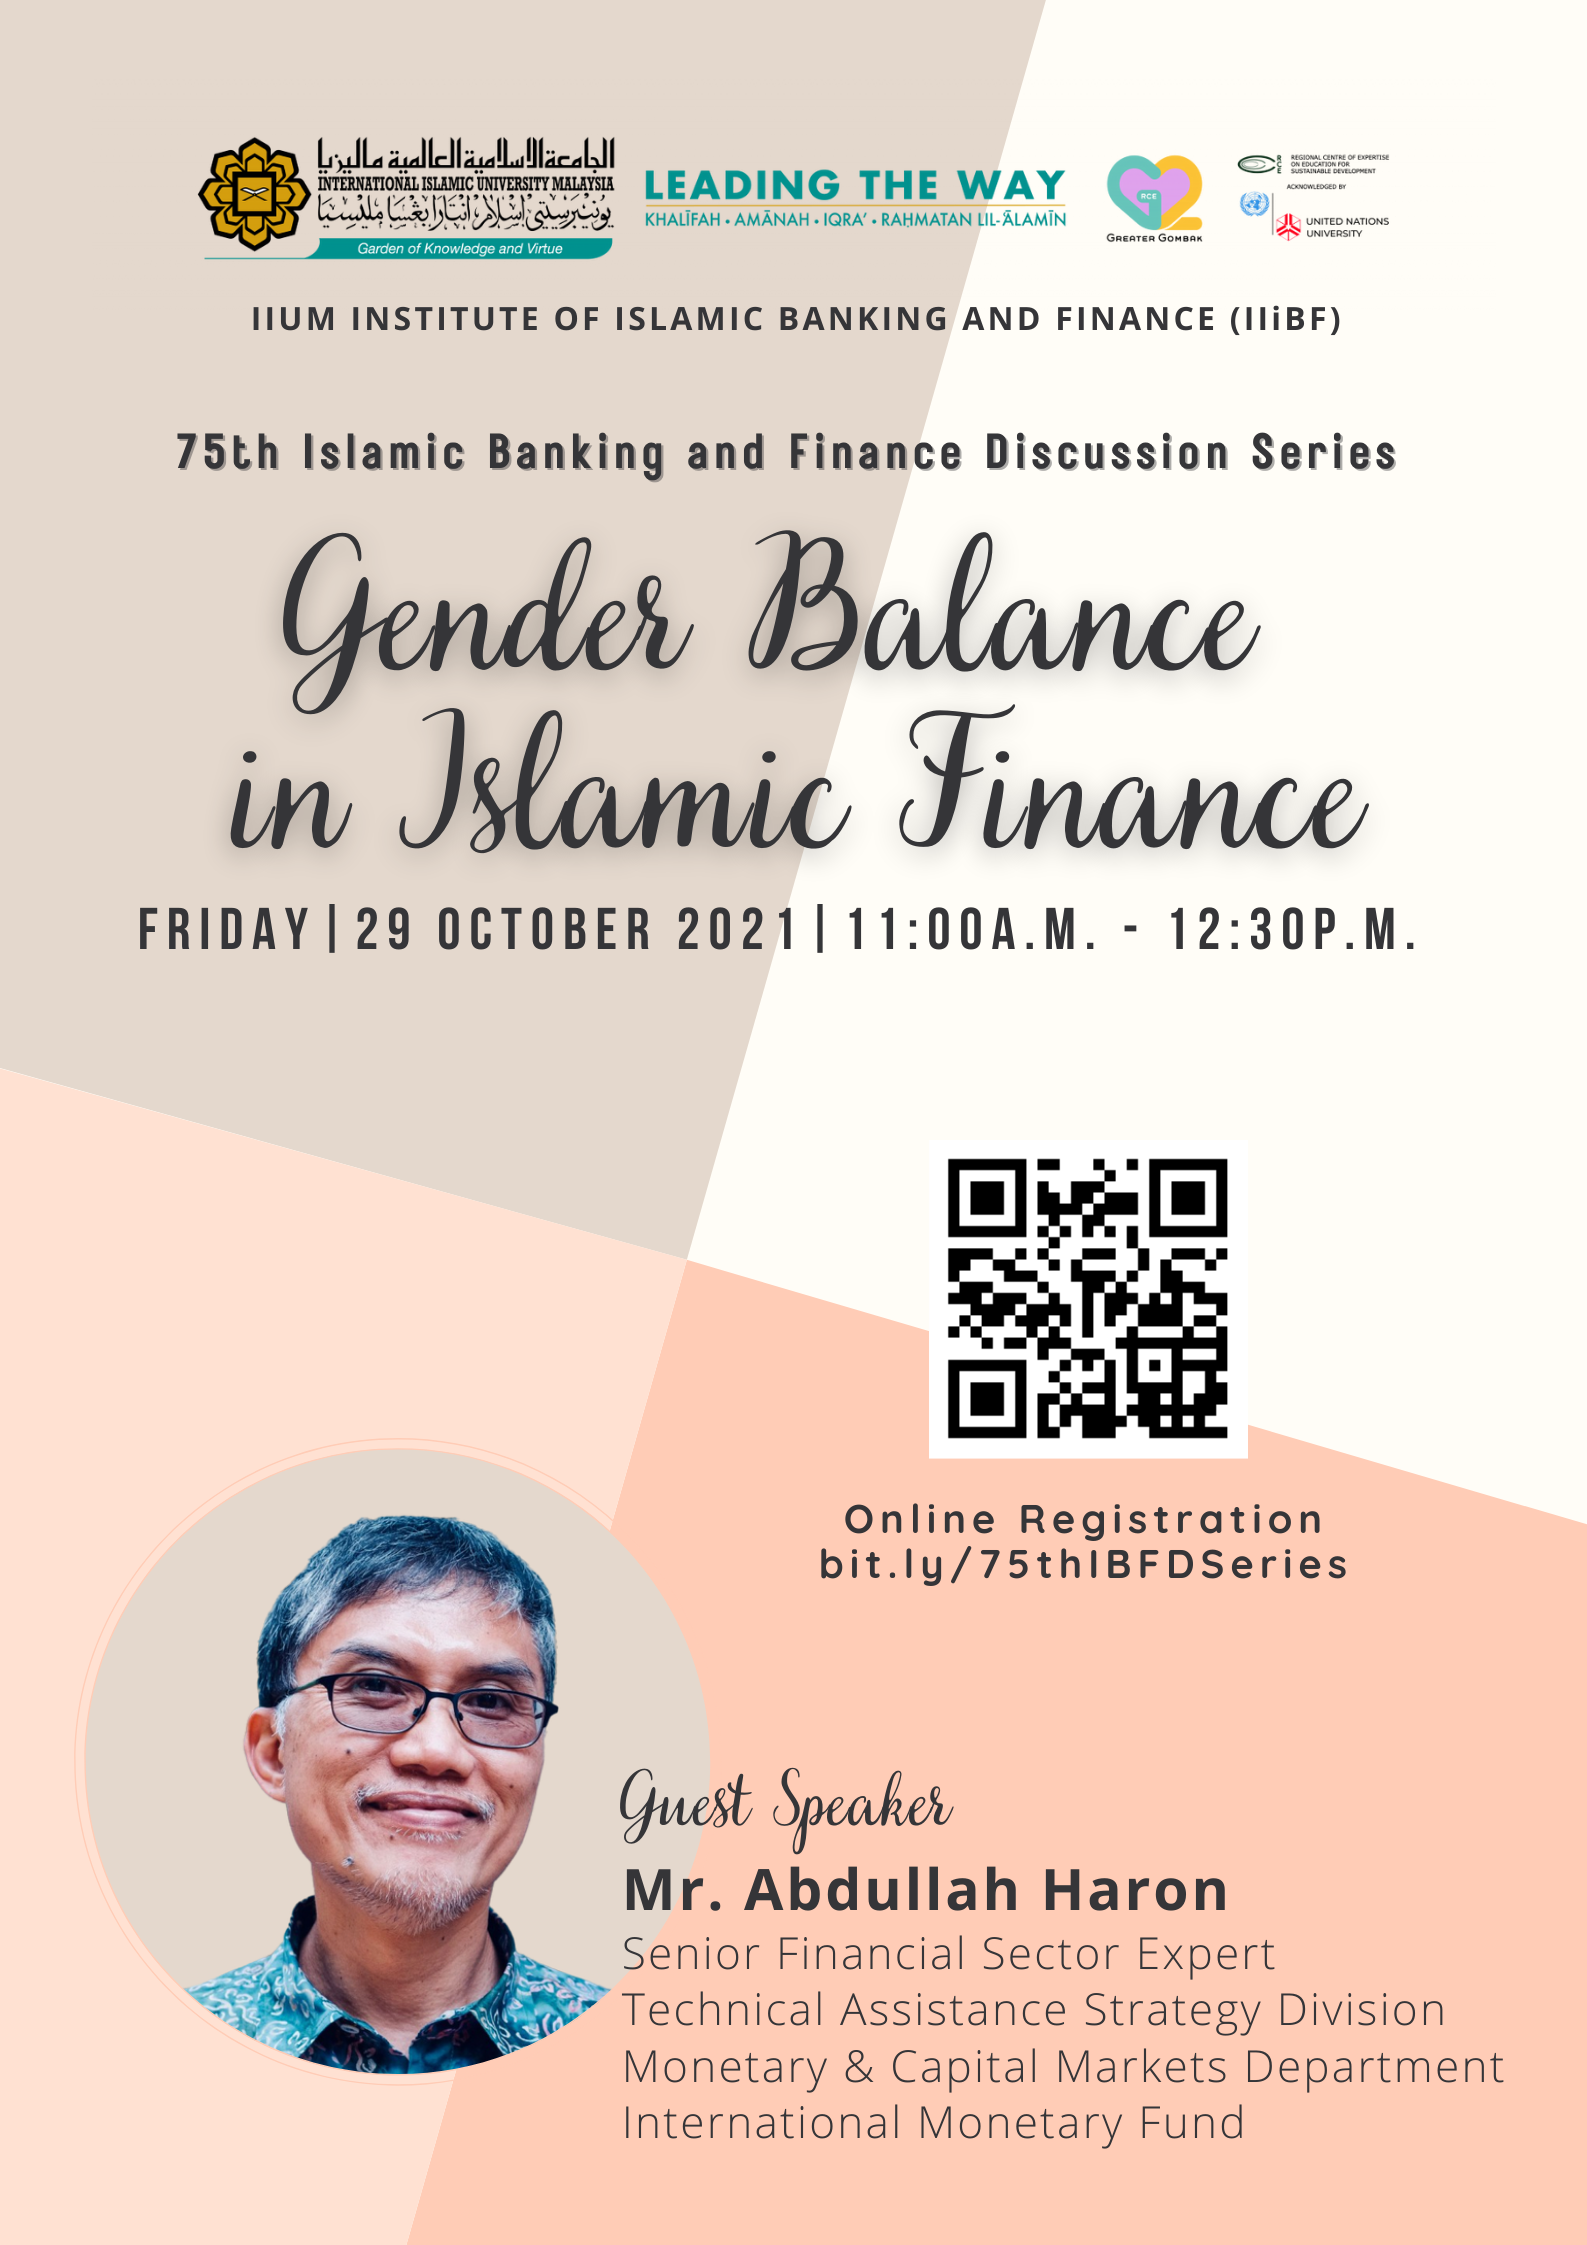 75th Islamic Banking and Finance Discussion Series